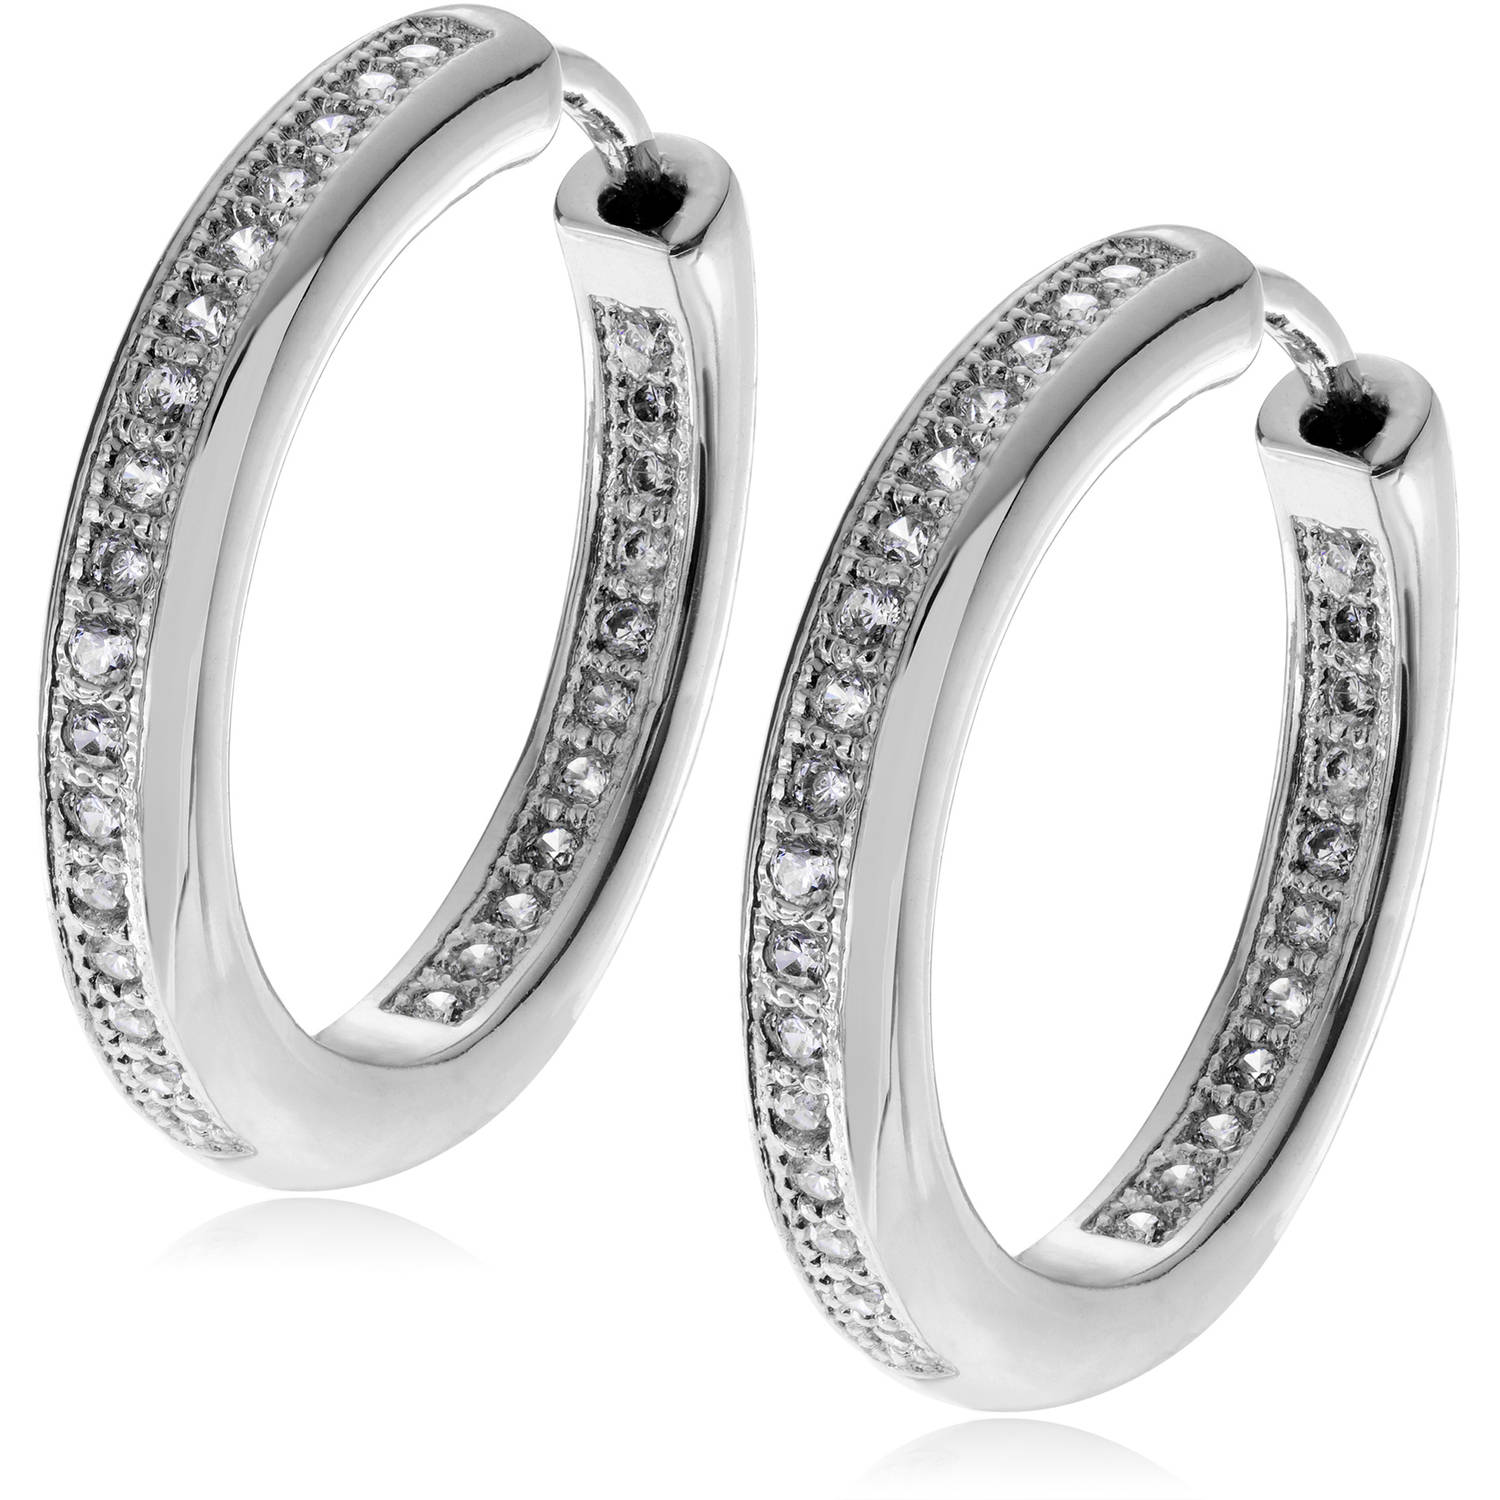 Brinley Co. Women's CZ Sterling Silver Hoop Earrings